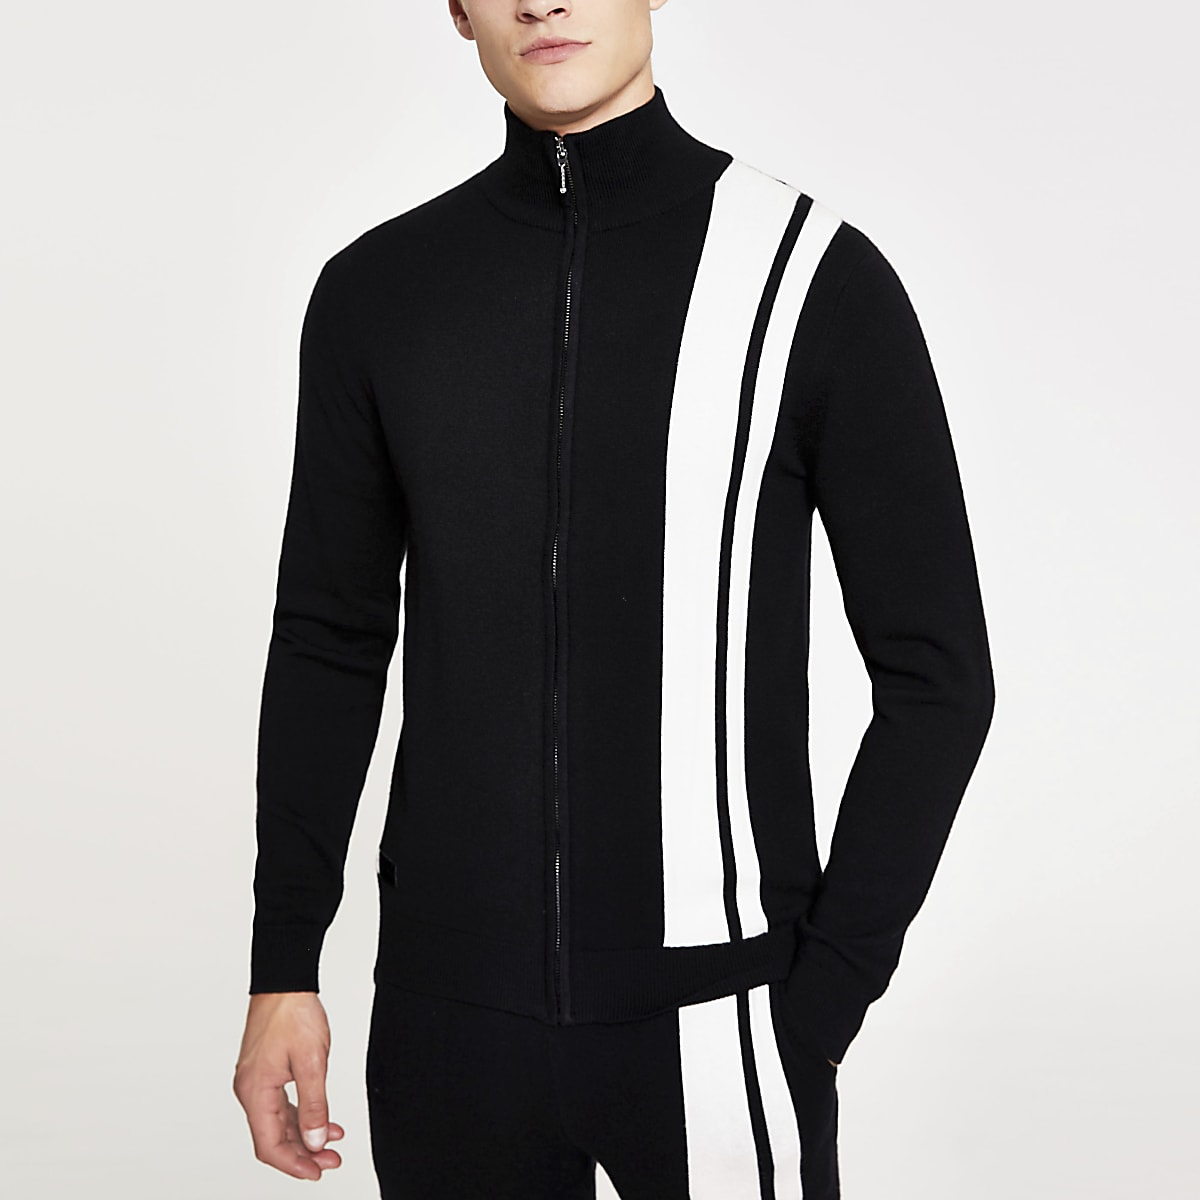 Black stripe funnel neck knitted jacket